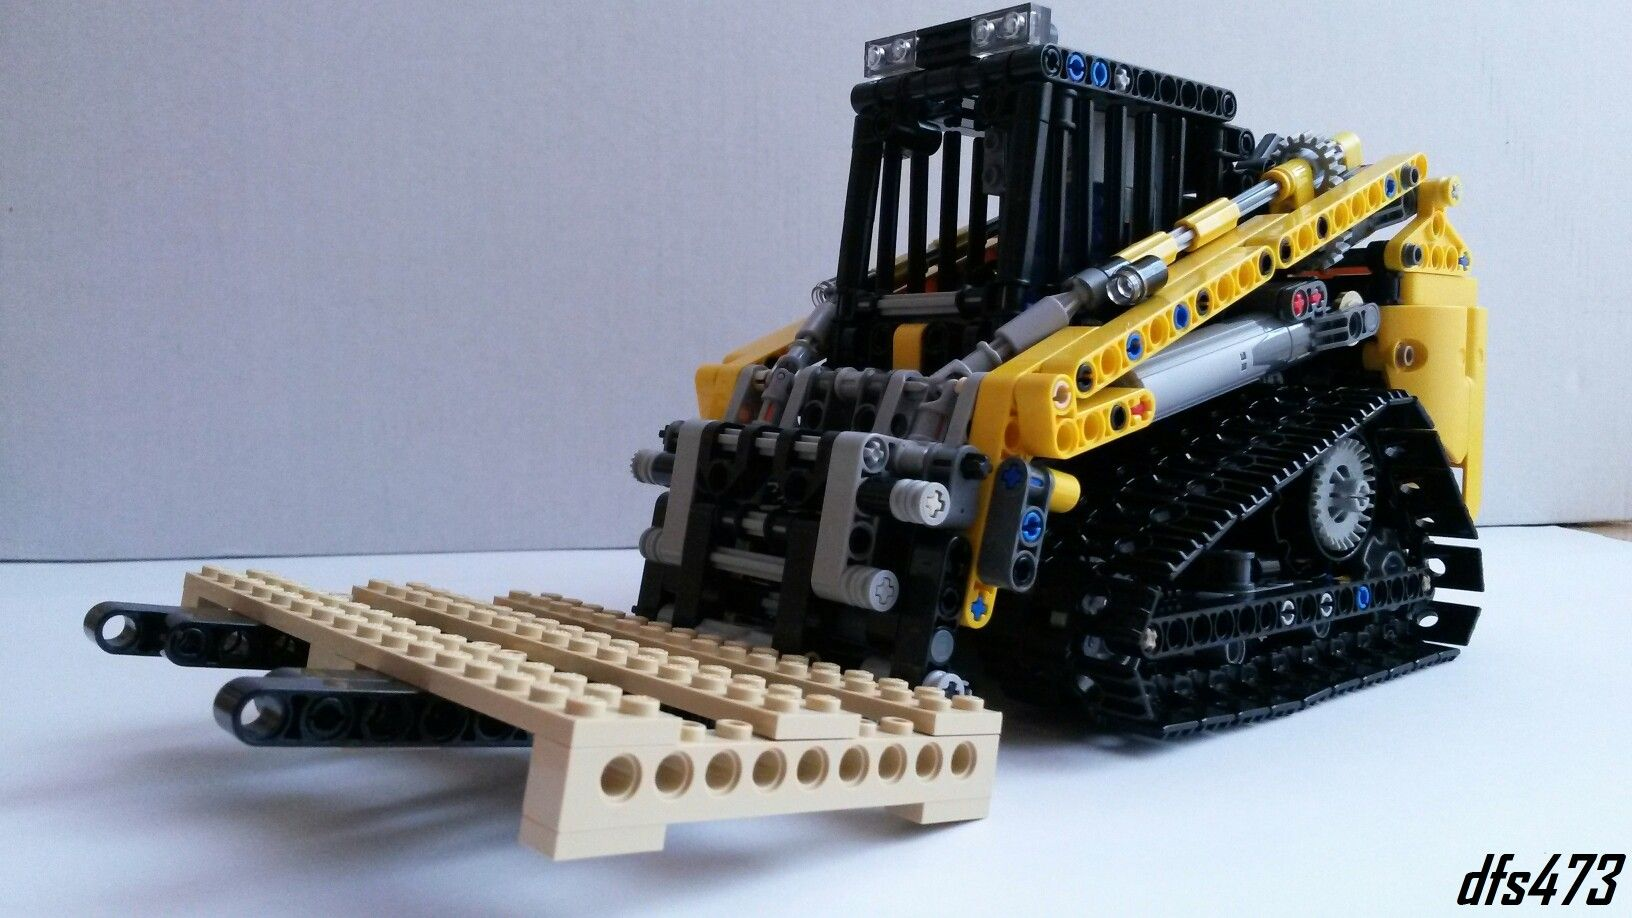 2legoornot2lego s pages bricksafe - Lego Auto Lego Car Lego Construction Heavy Equipment Lego Creations Motorbikes Roman Trucks